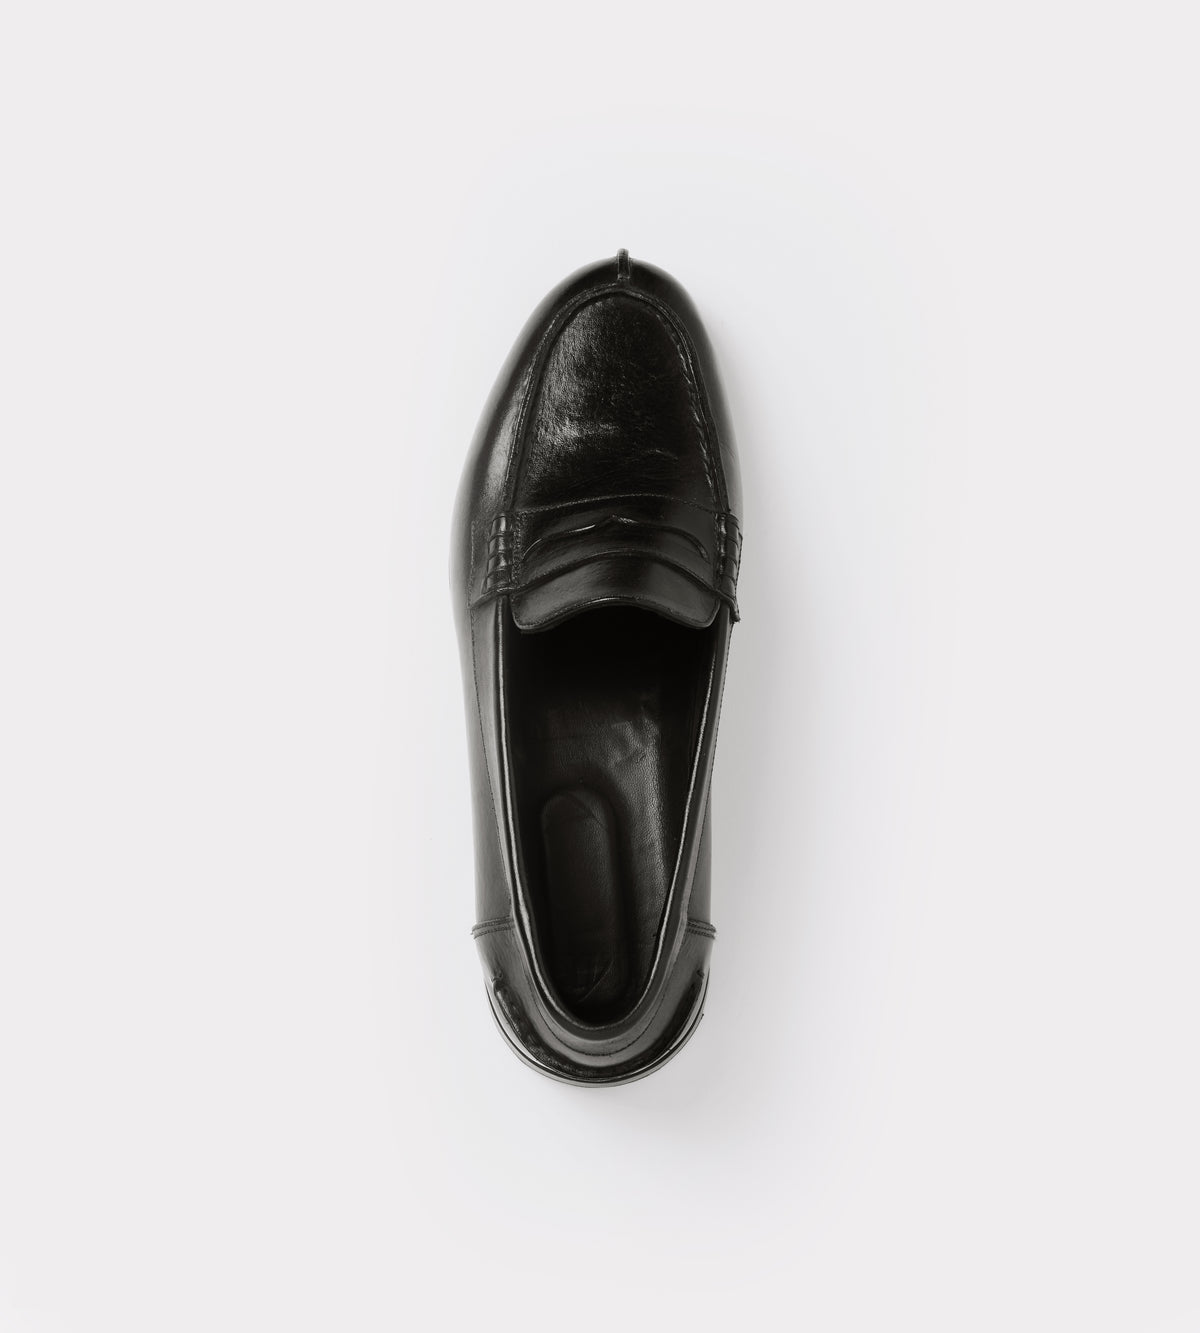 Black calf leather moccasin top view